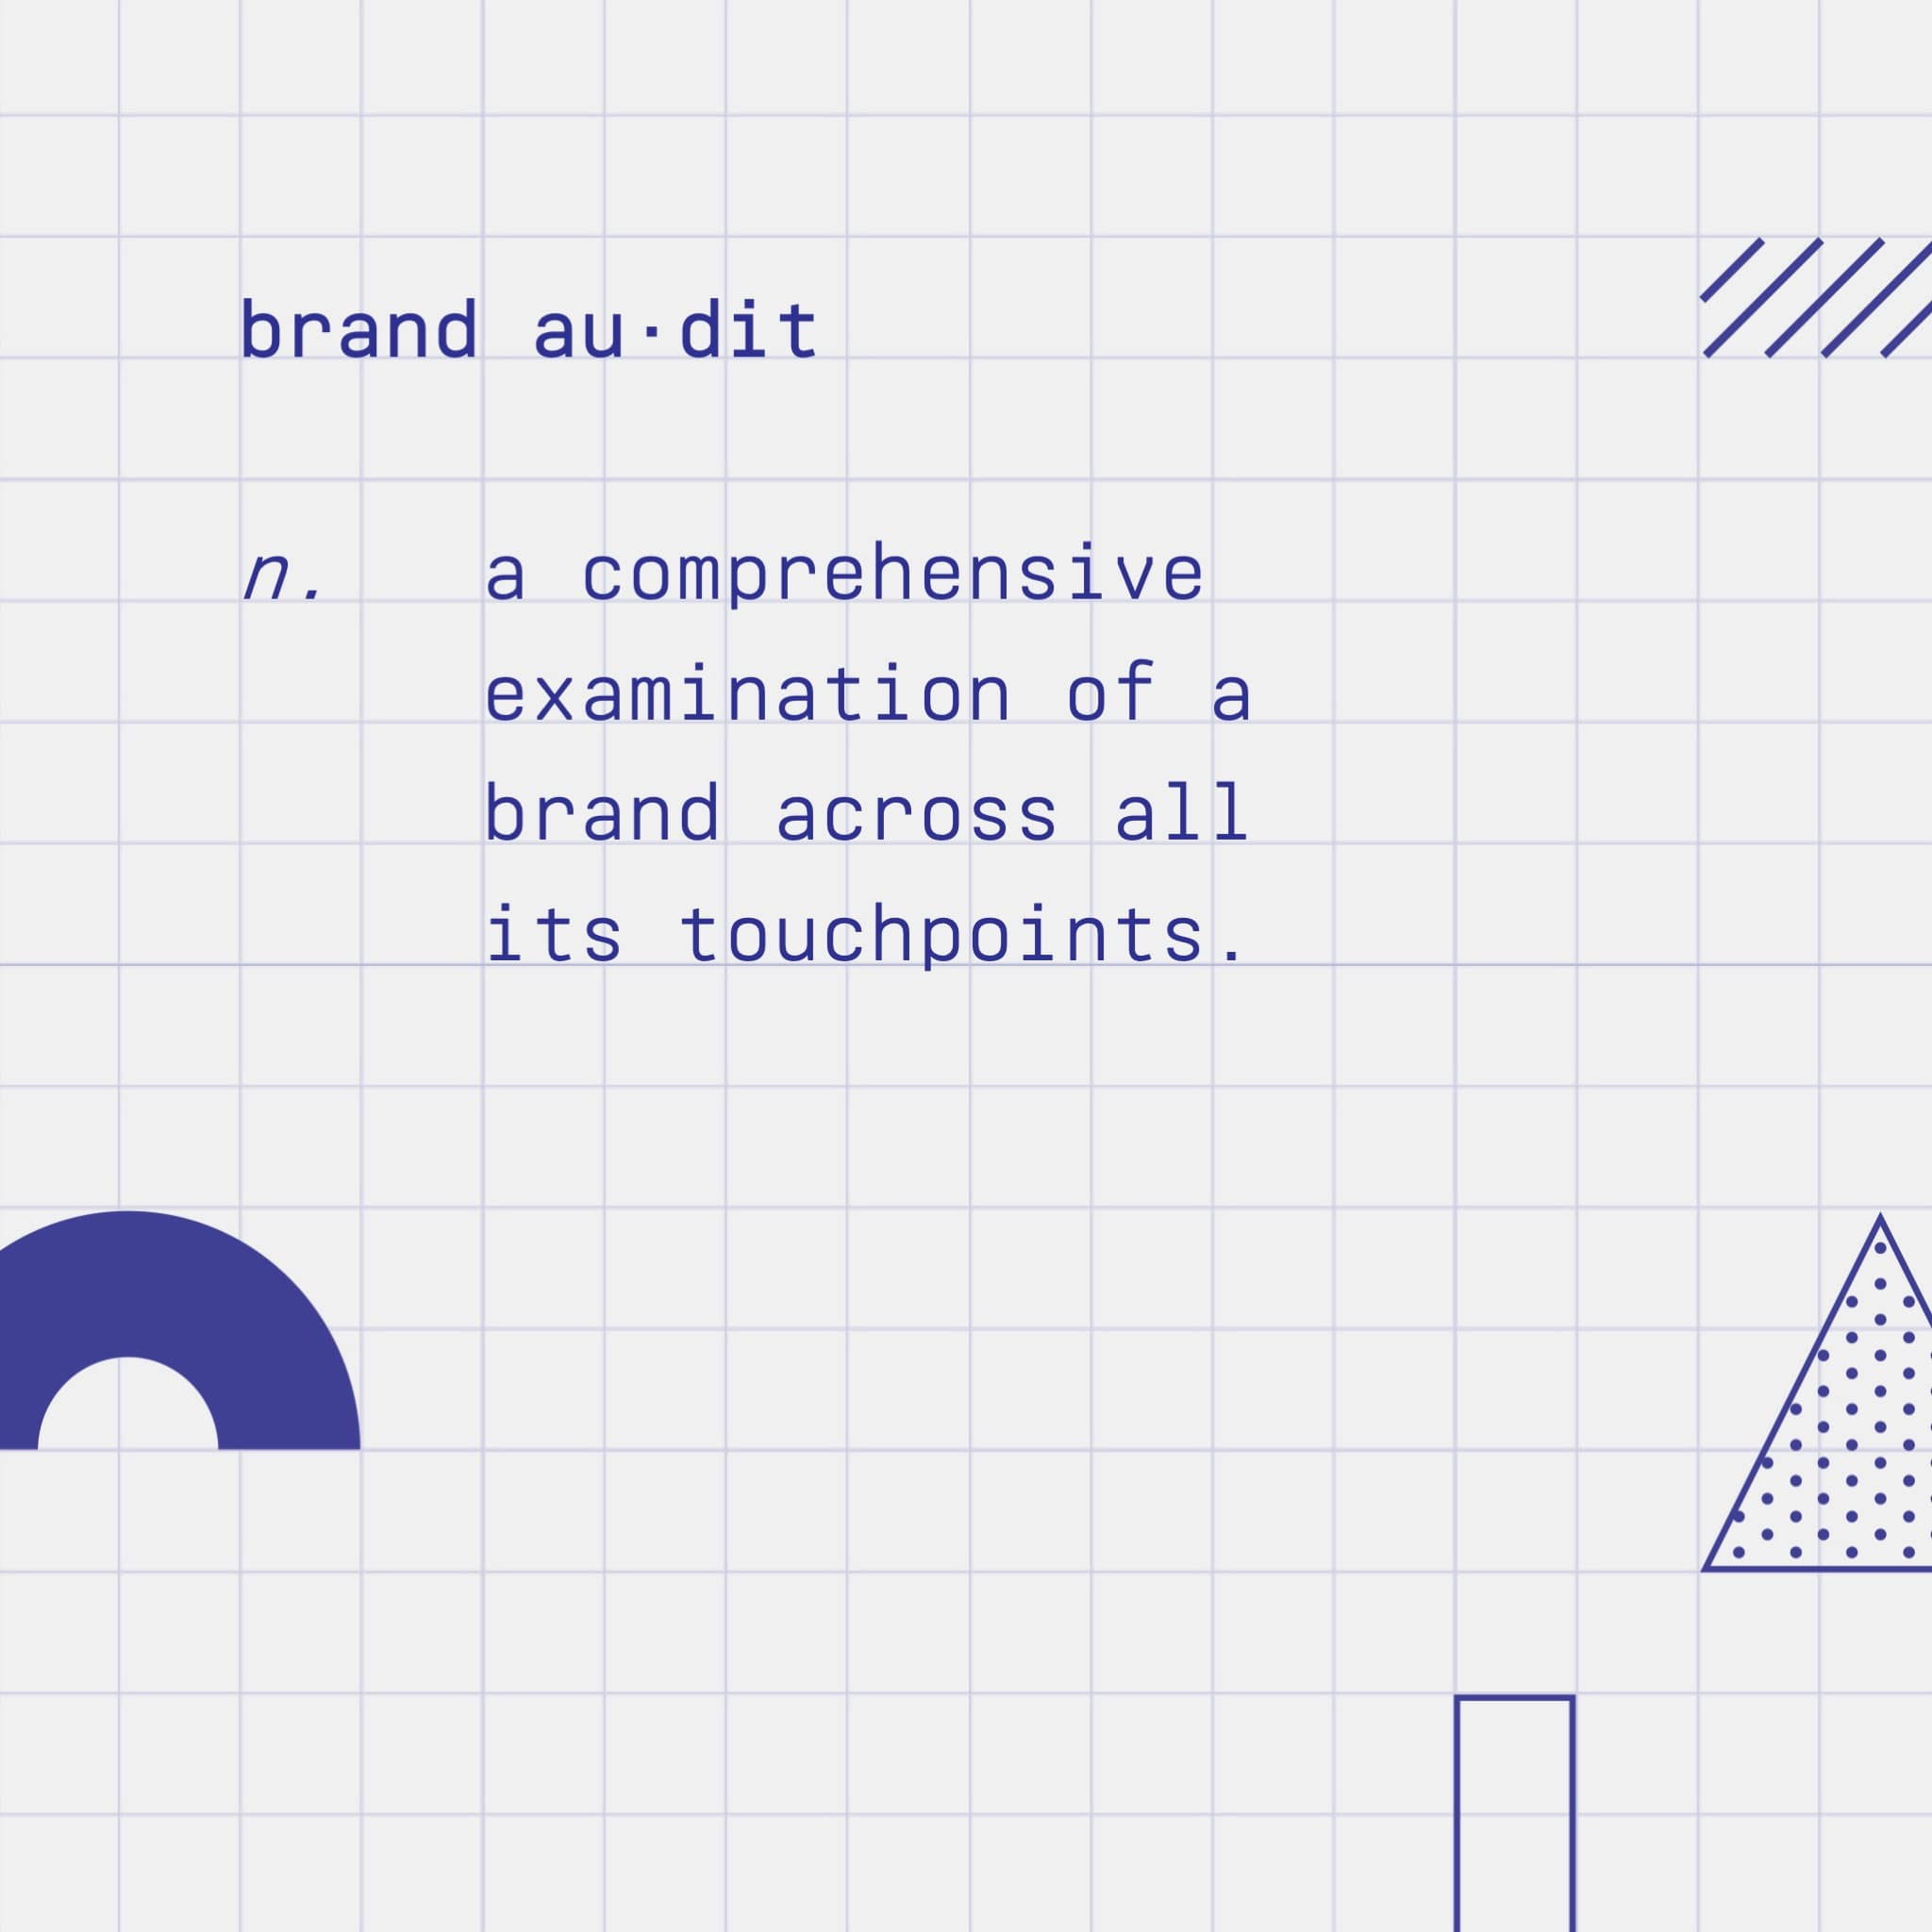 Brand audit definition